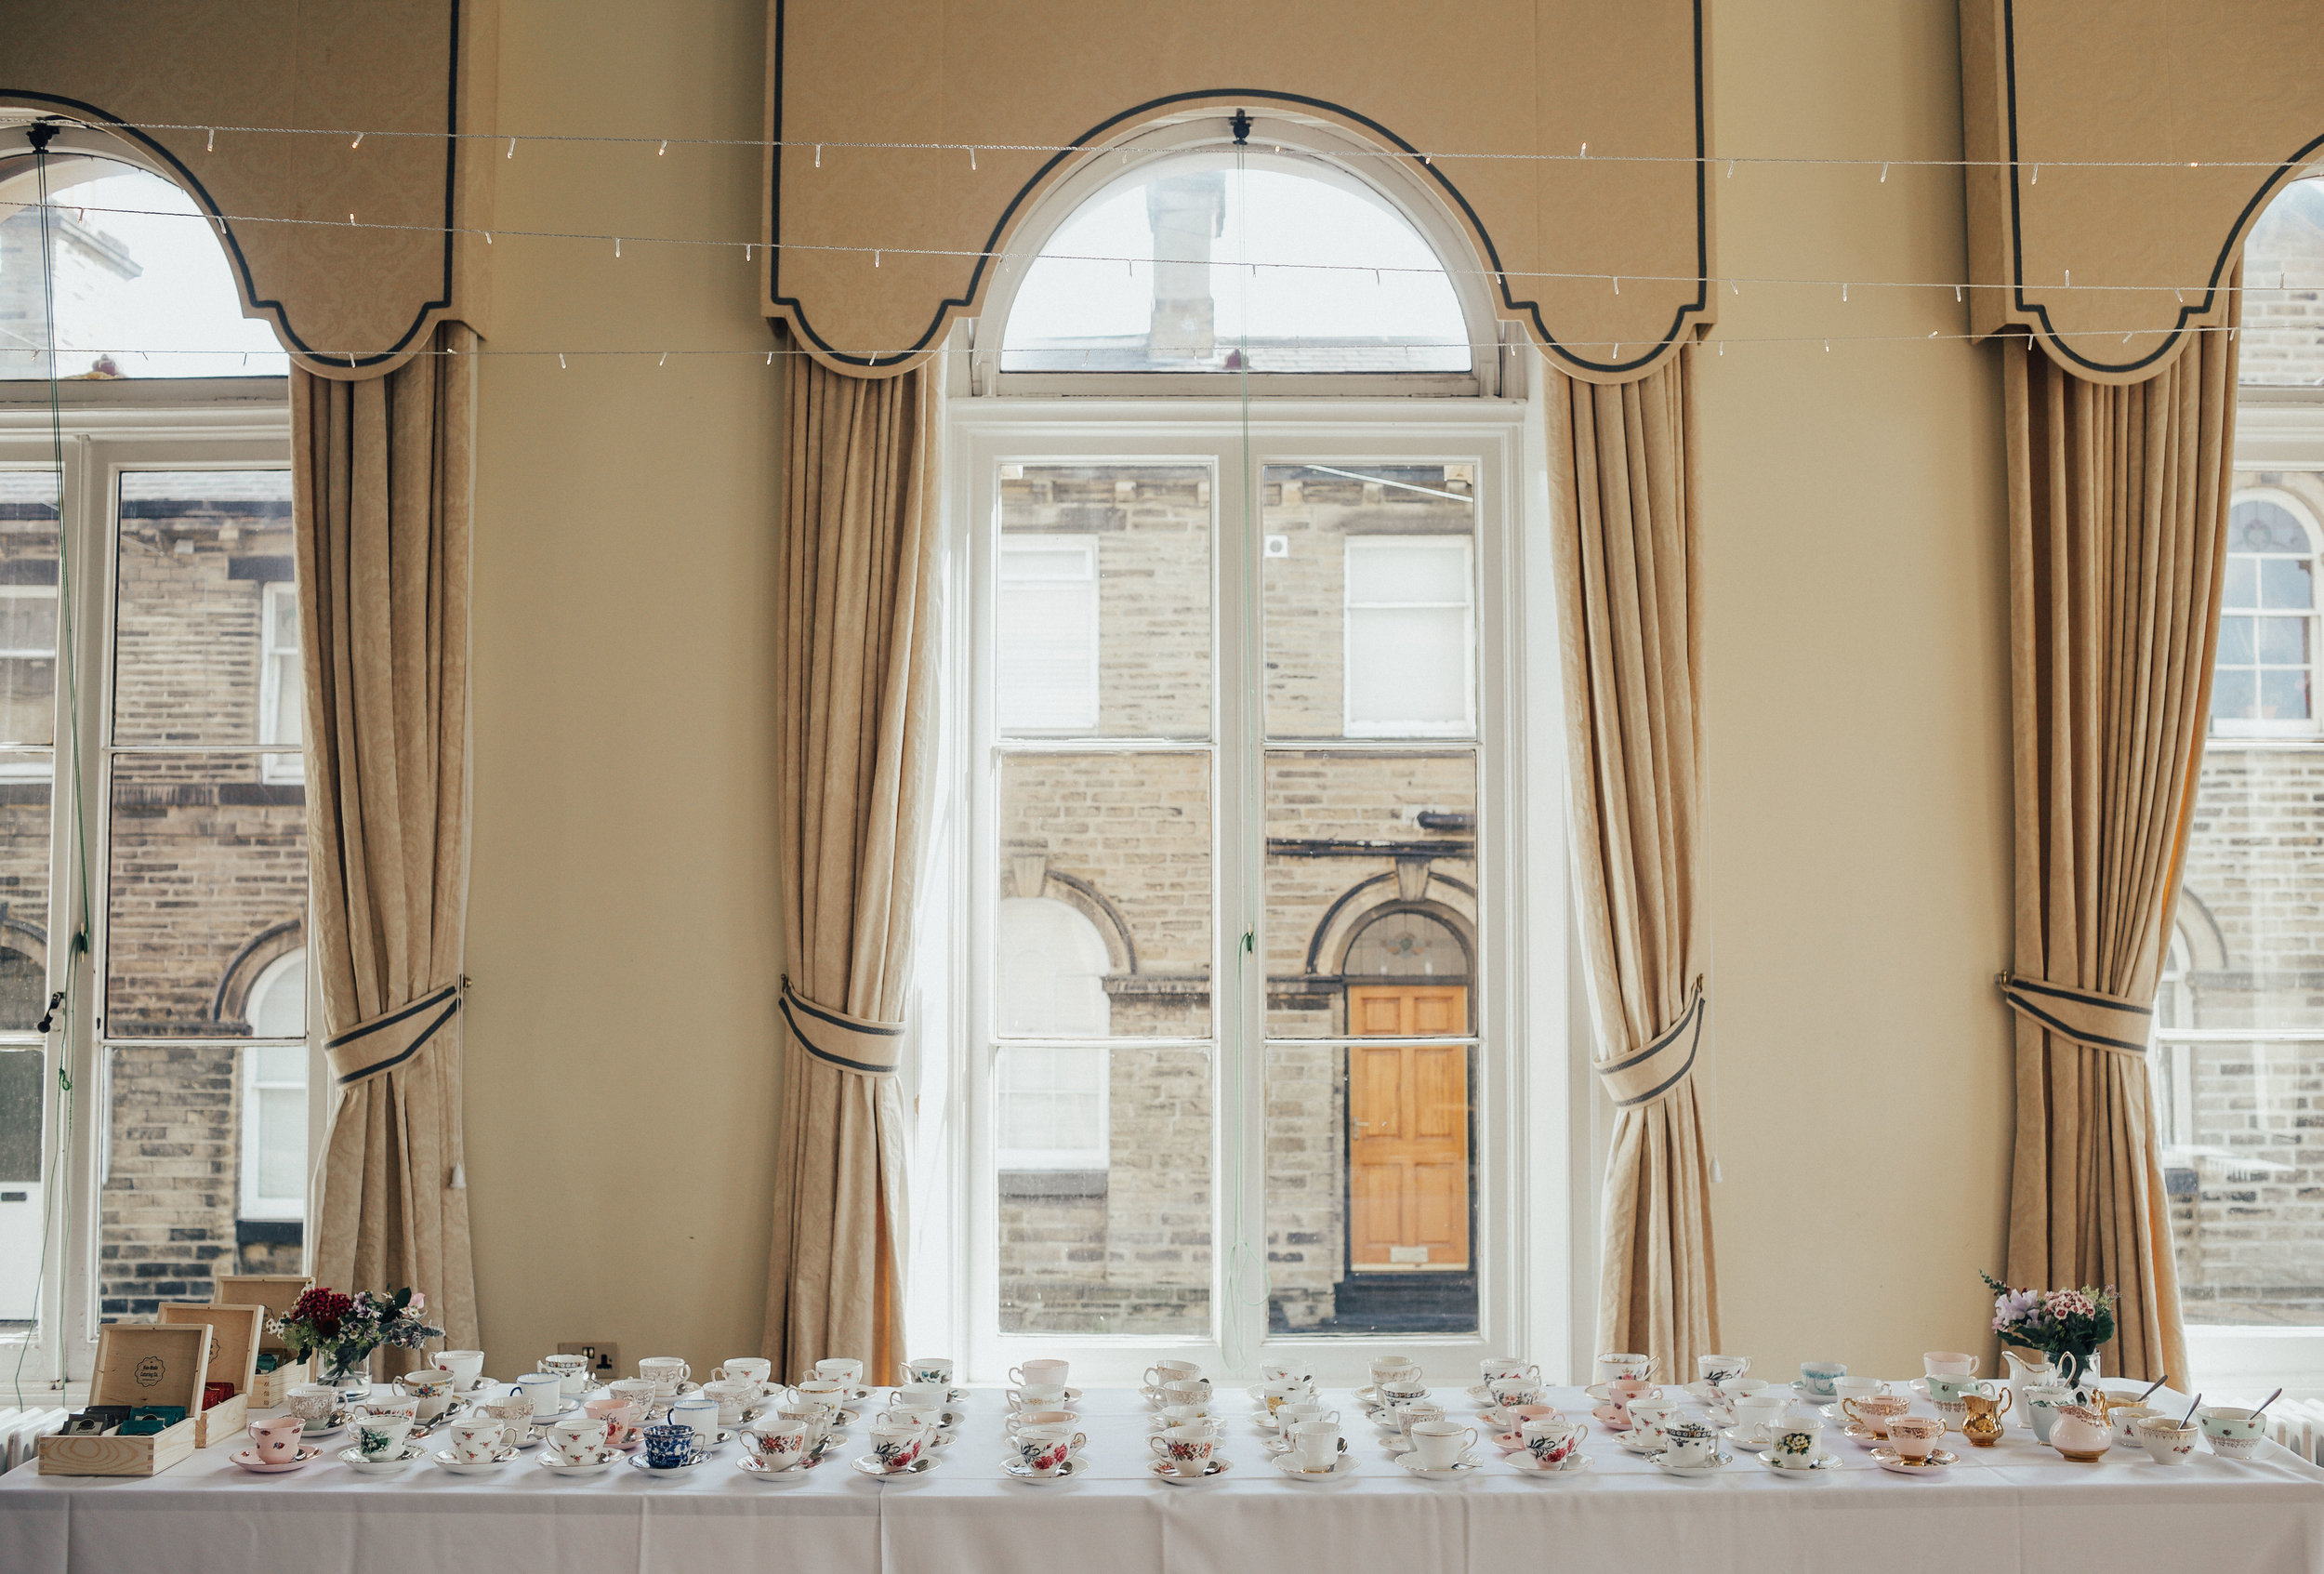 VICTORIA_HALL_SALTAIRE_VINTAGE_YORKSHIRE_WEDDING_PJ_PHILLIPS_PHOTOGRAPHY_90.jpg